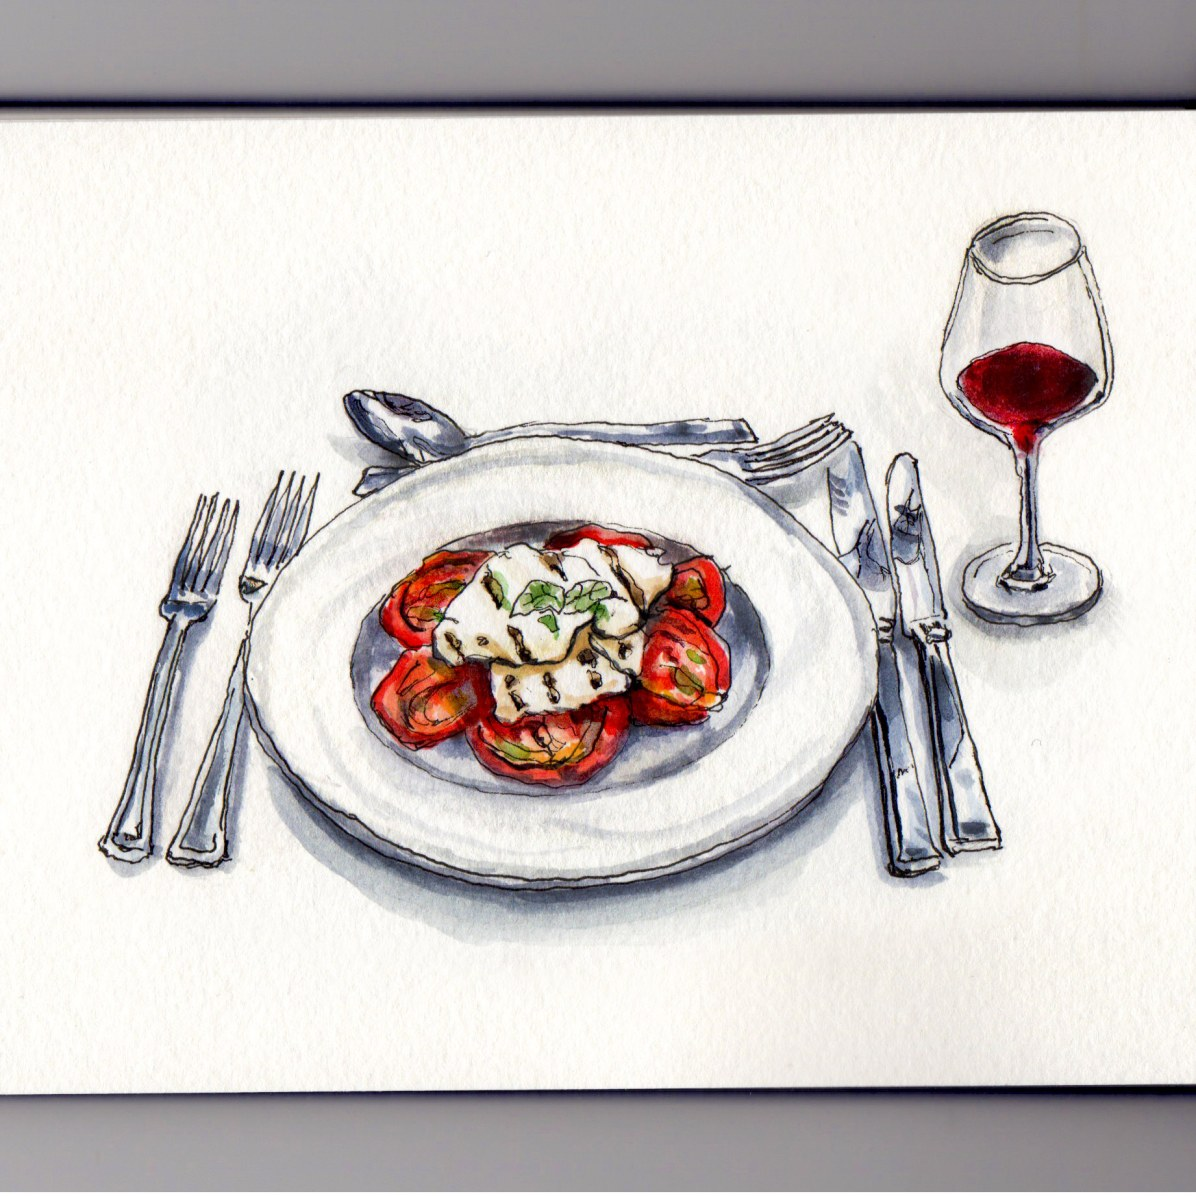 Doodlewash of dinner table setting with red wine and Caprese Salad